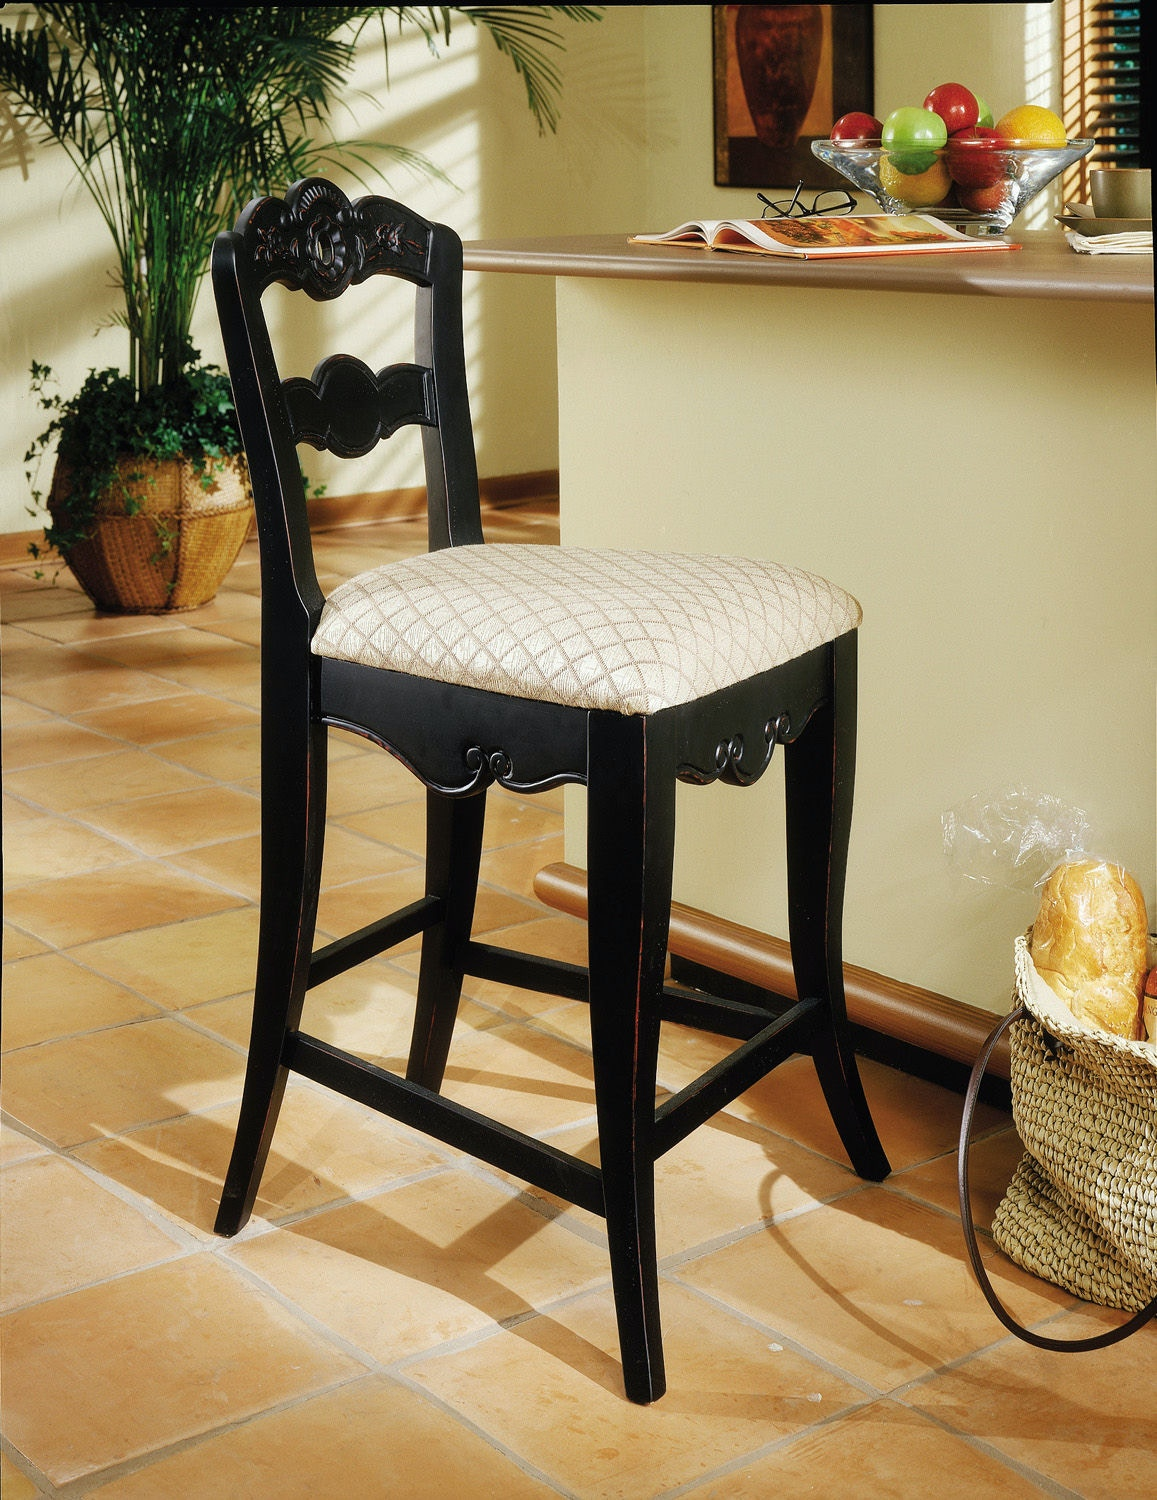 Powell Furniture Dining Room Hills Of Provence Inch Antique Black Over  Terra Cotta Inch Counter Stool, 24 Inch Seat Height 896 430   Turner  Furniture ...